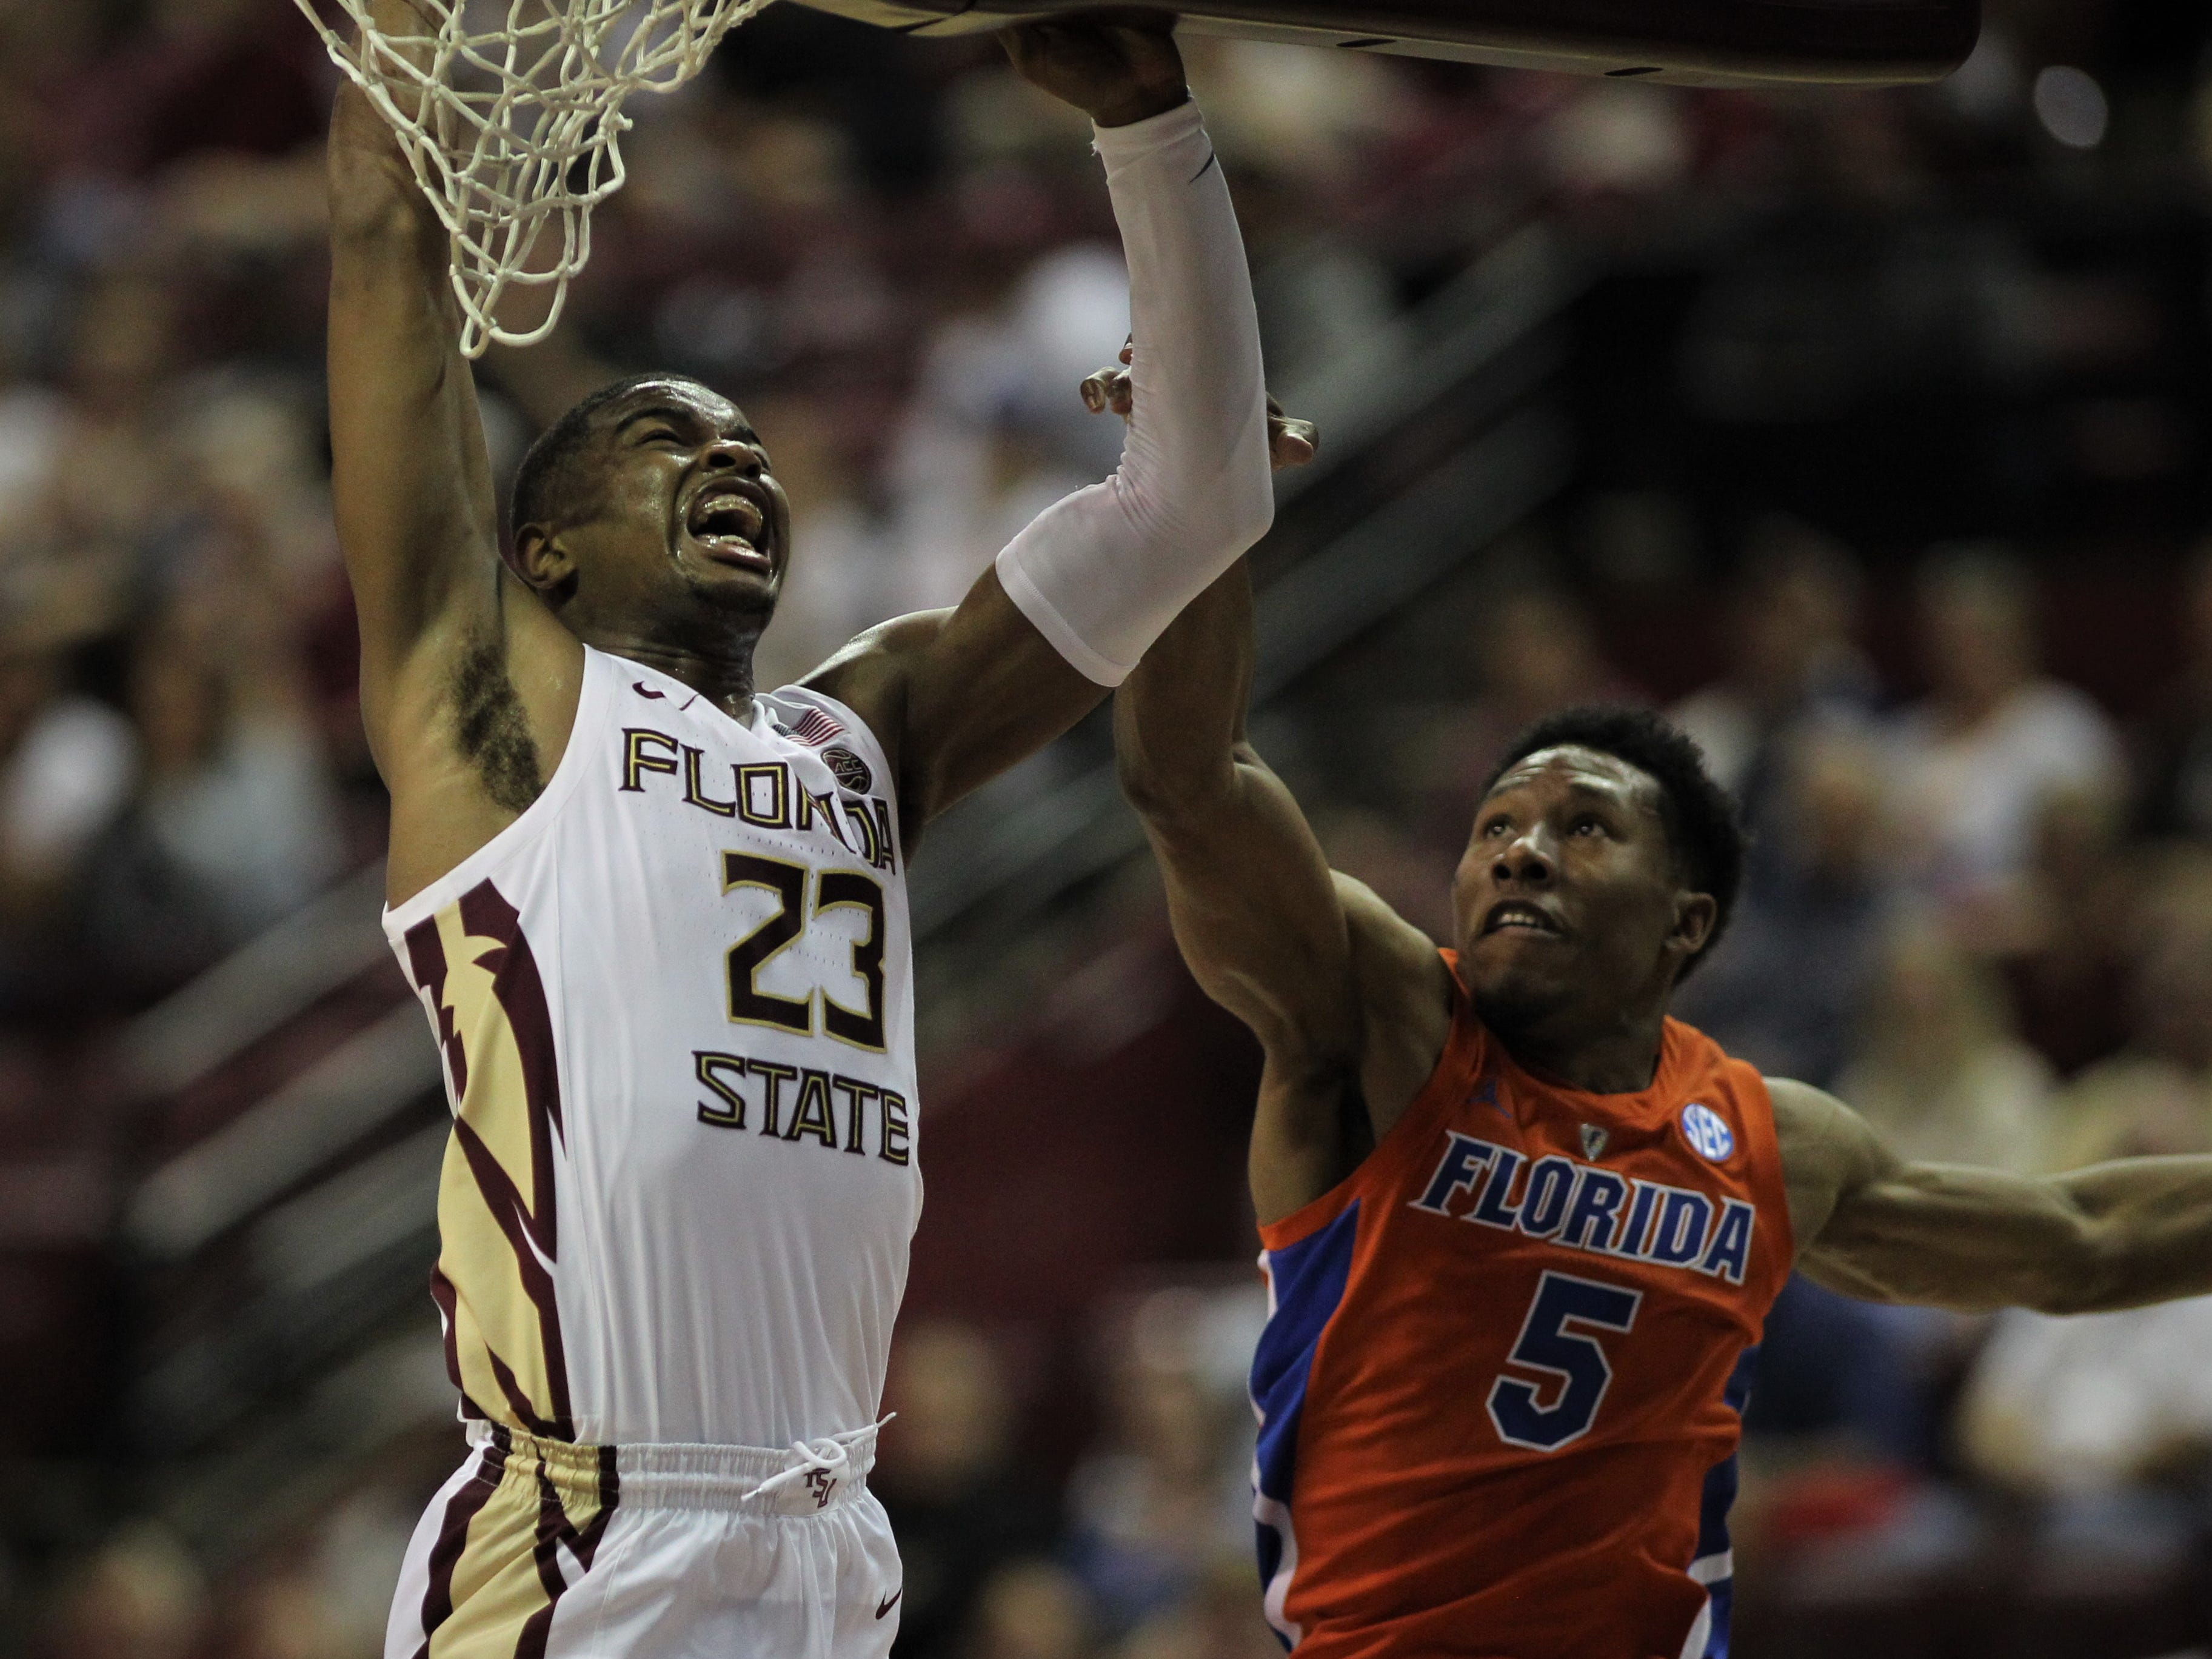 Florida State's M.J. Walker is fouled by Florida's Kevaughn Allen on a layup during the Sunshine Showdown game Tuesday at the Tucker Civic Center.